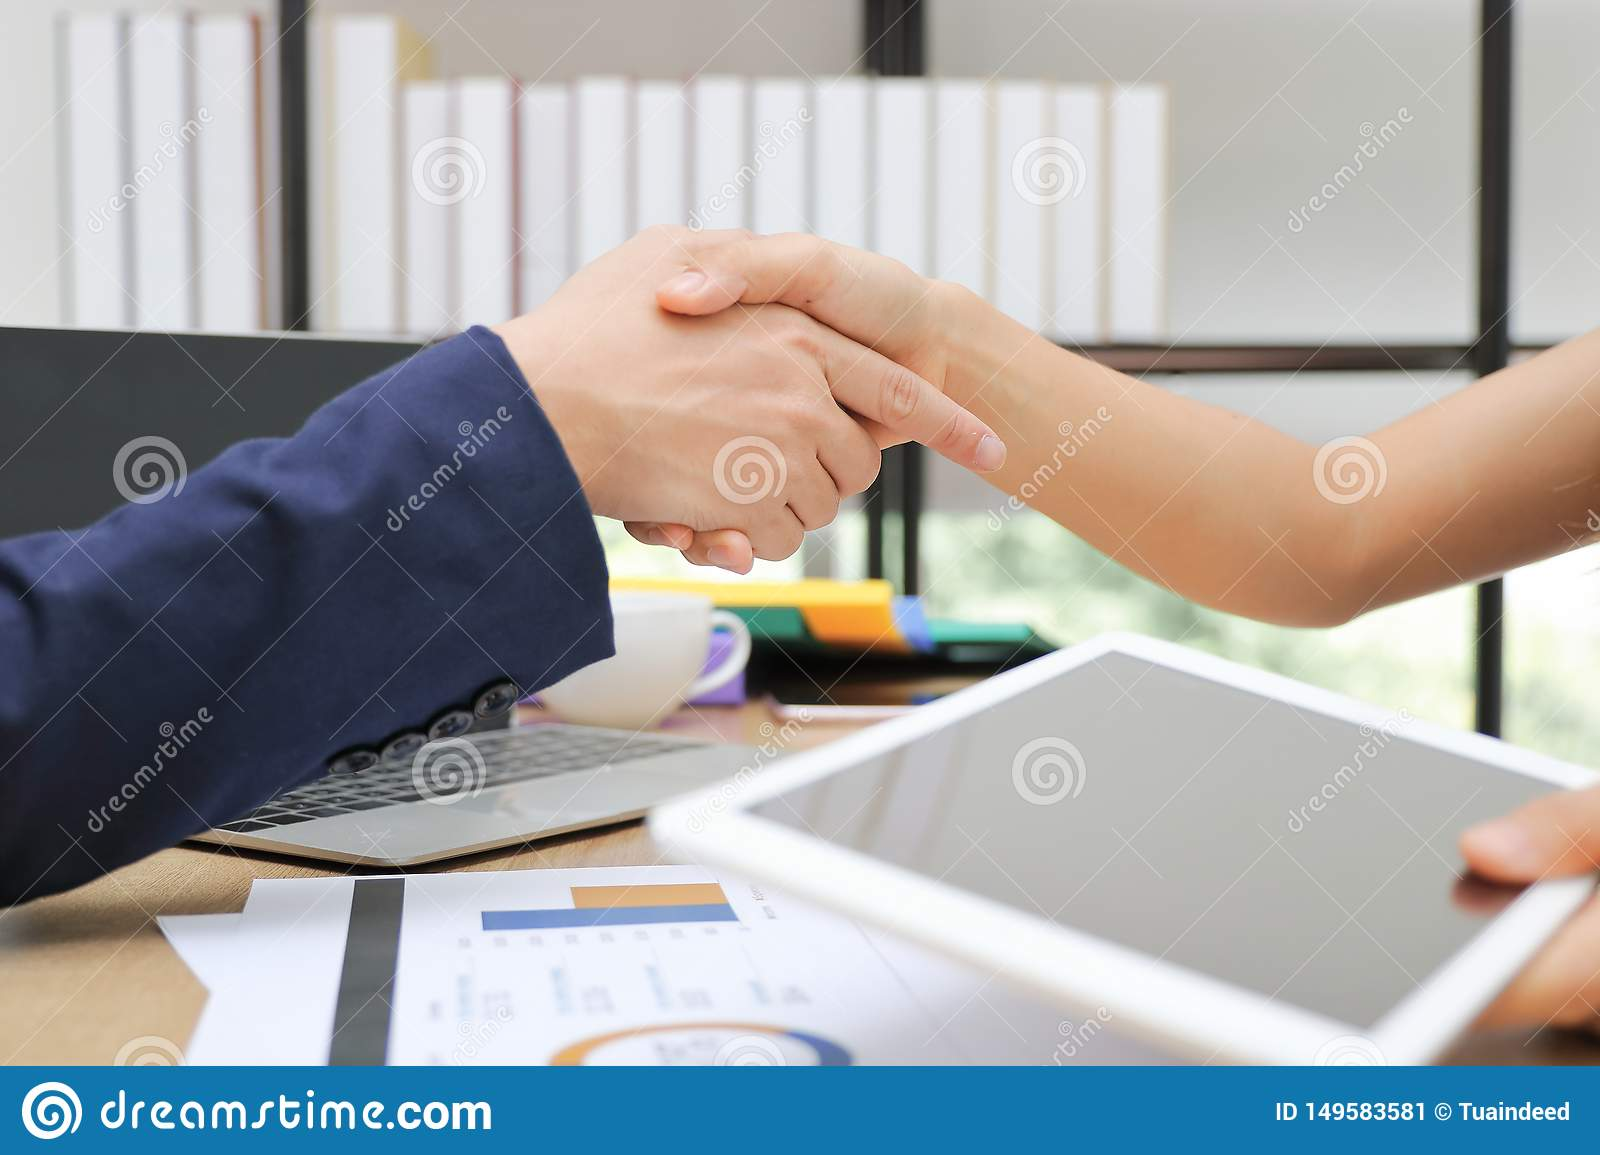 Cropped image of business people shaking hands with partners after finishing a meeting. Handshake greeting deal concept